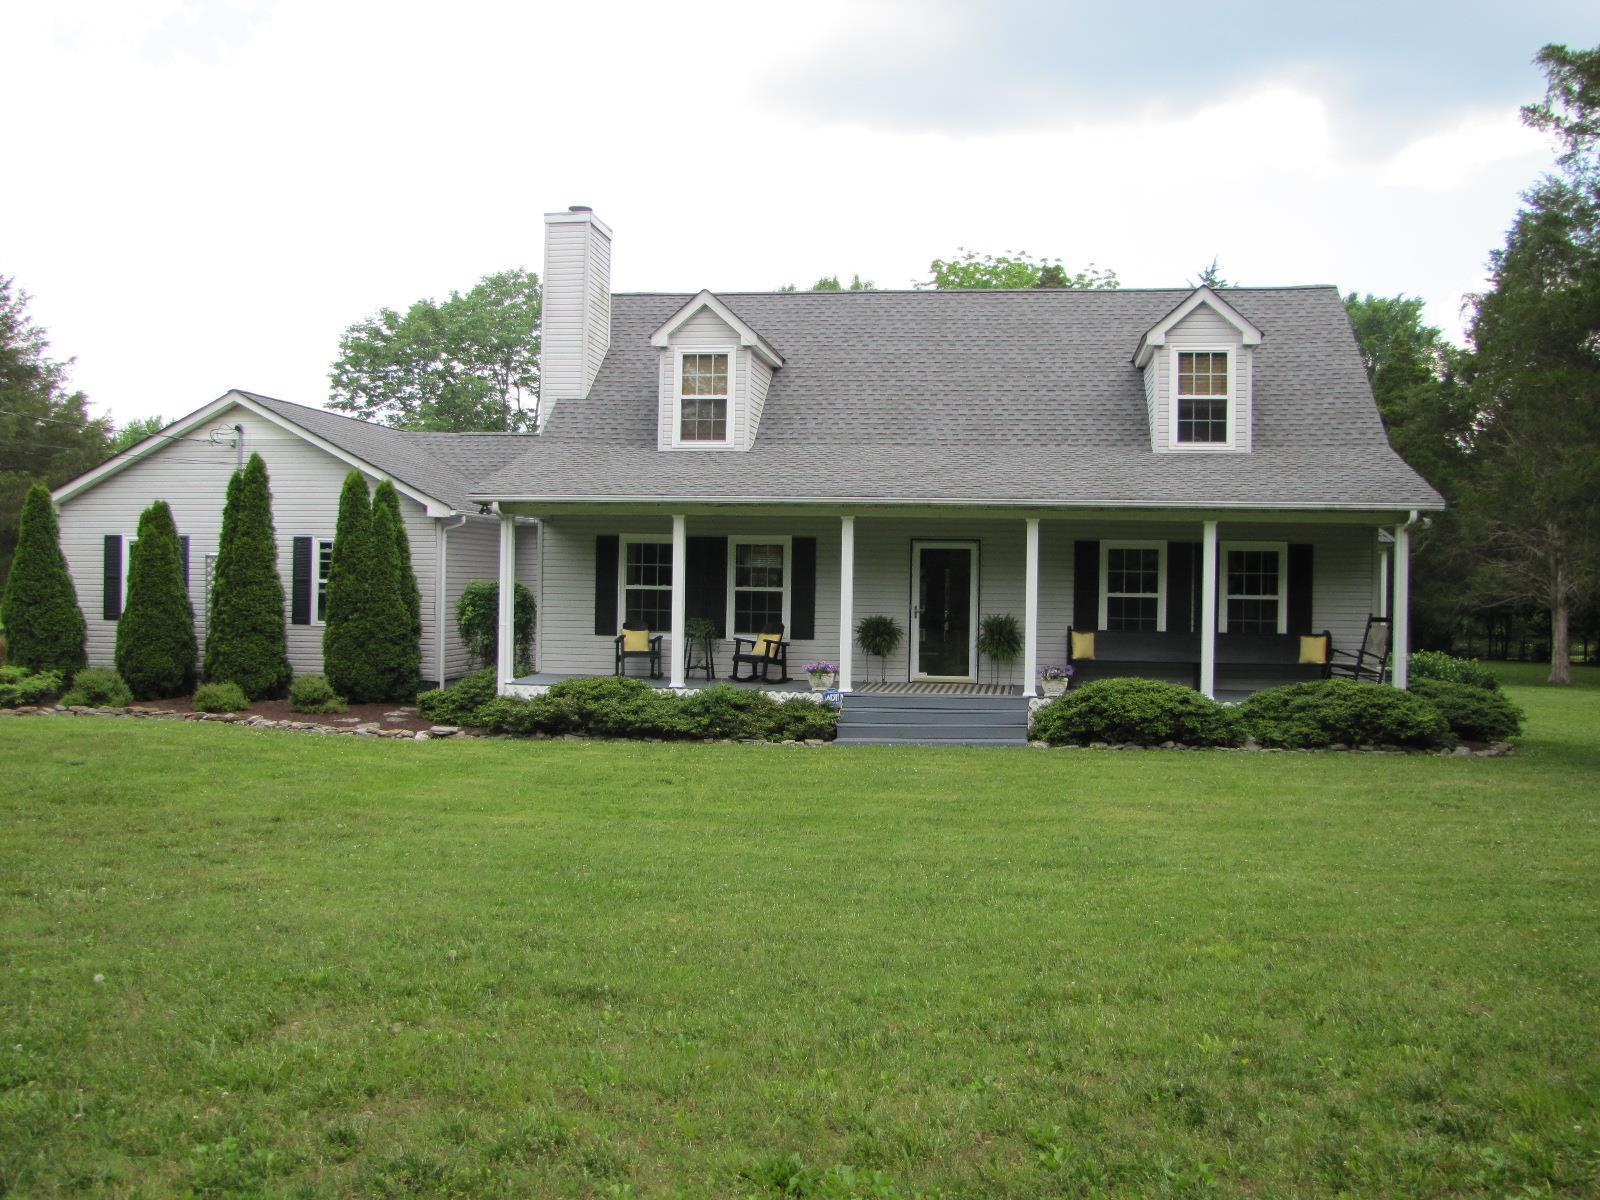 448 Quarry Rd, Mount Juliet, Tennessee